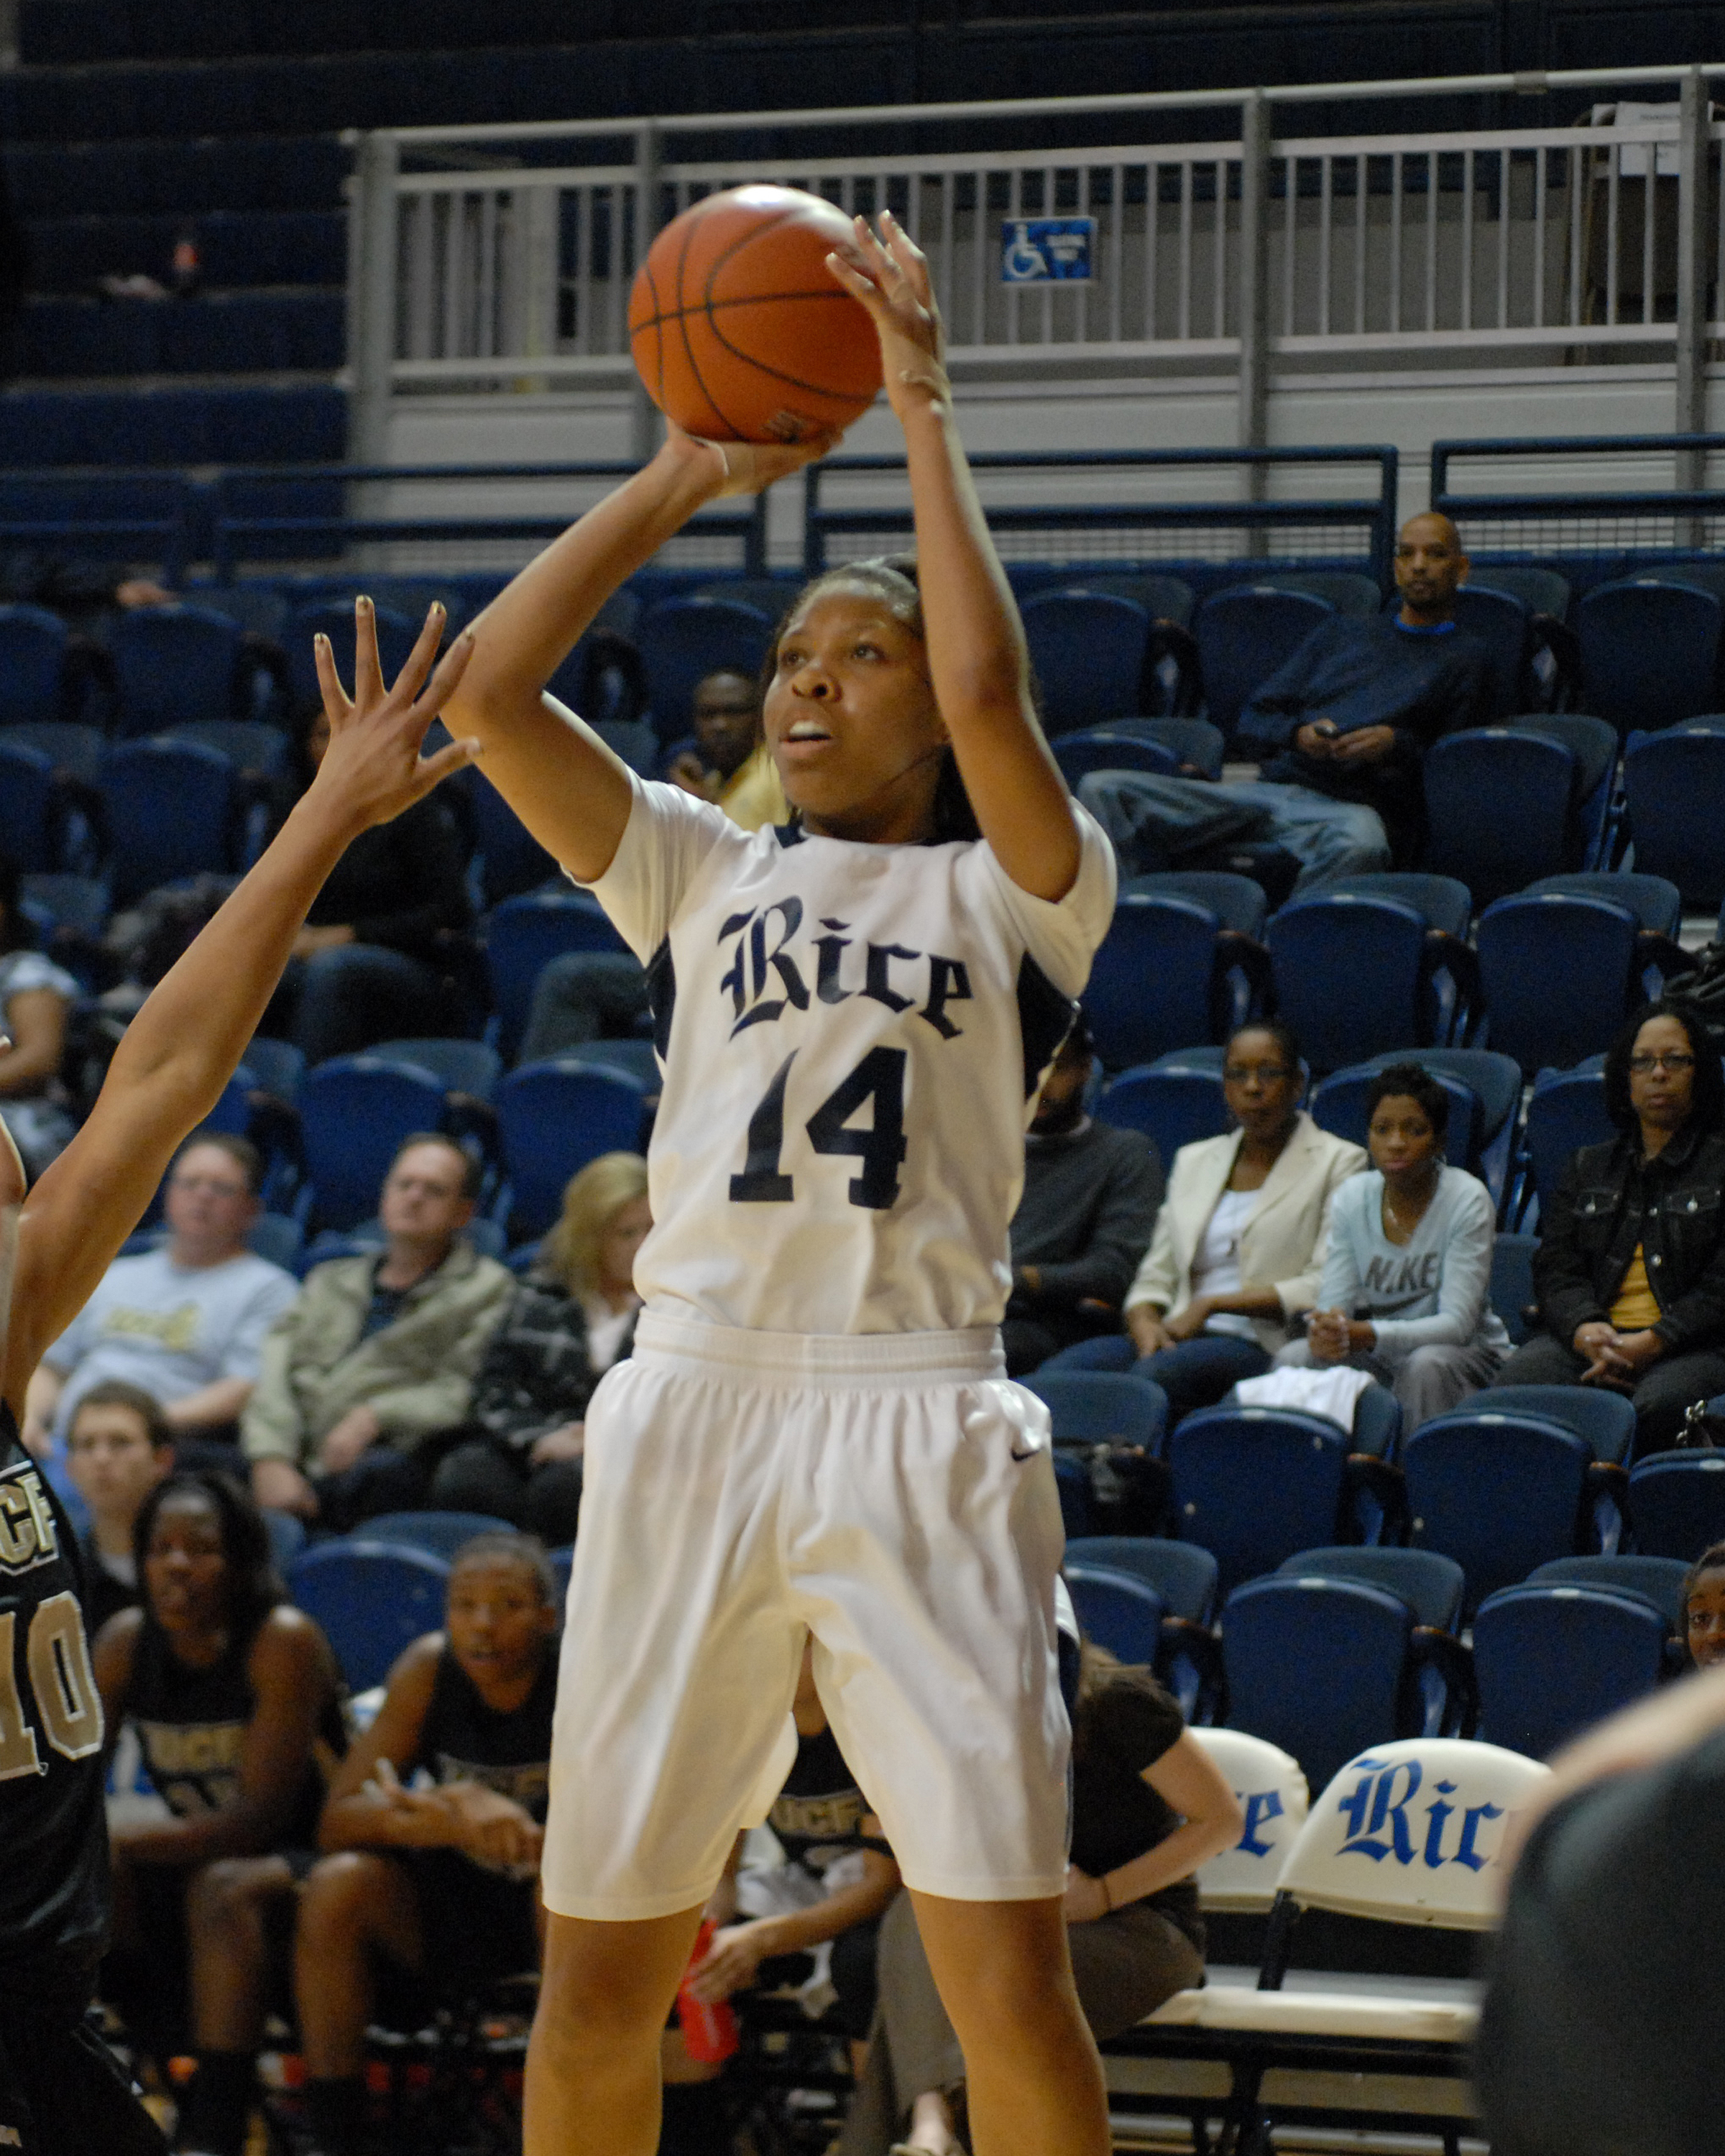 Junior Brianna Hypolite leads the Owls in scoring at 12.9 points per game.